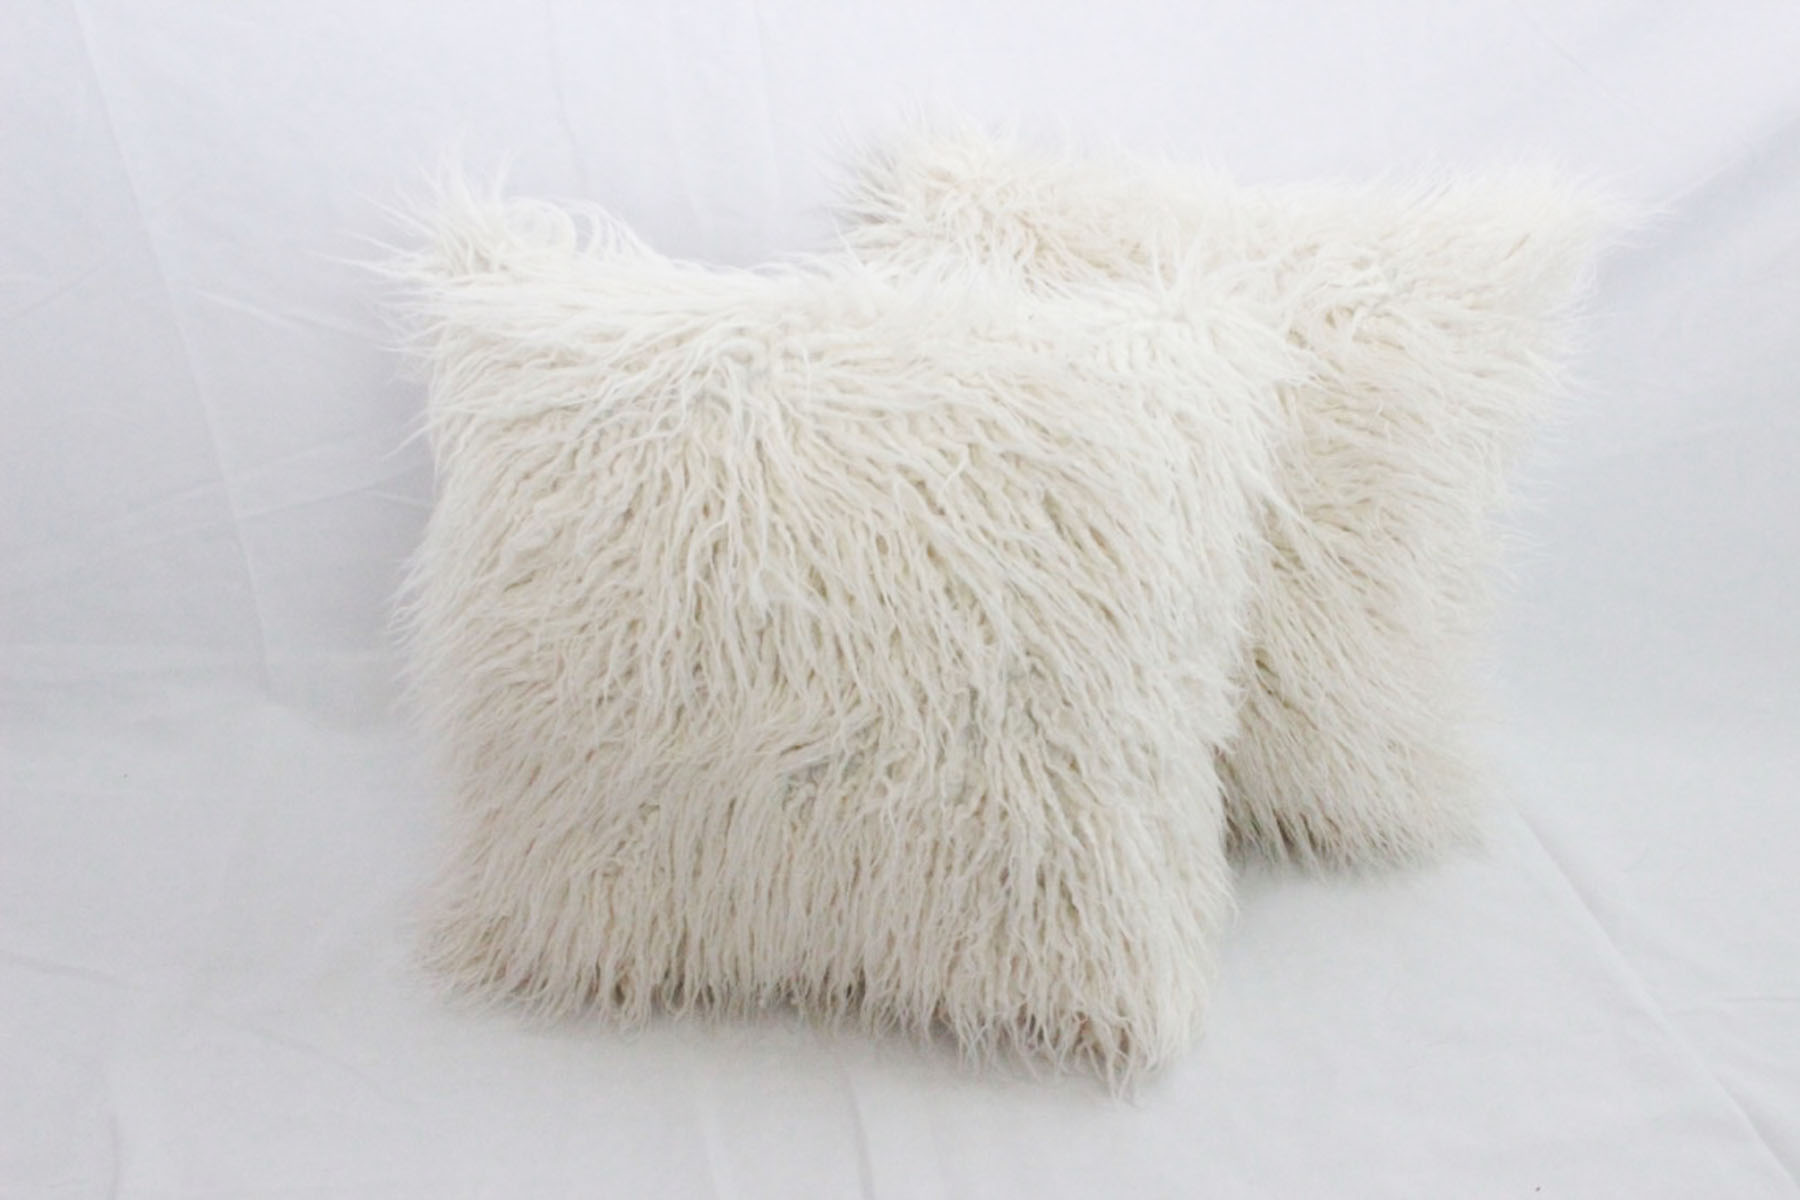 Mongolia Pillows - Scavenged Vintage Rentals